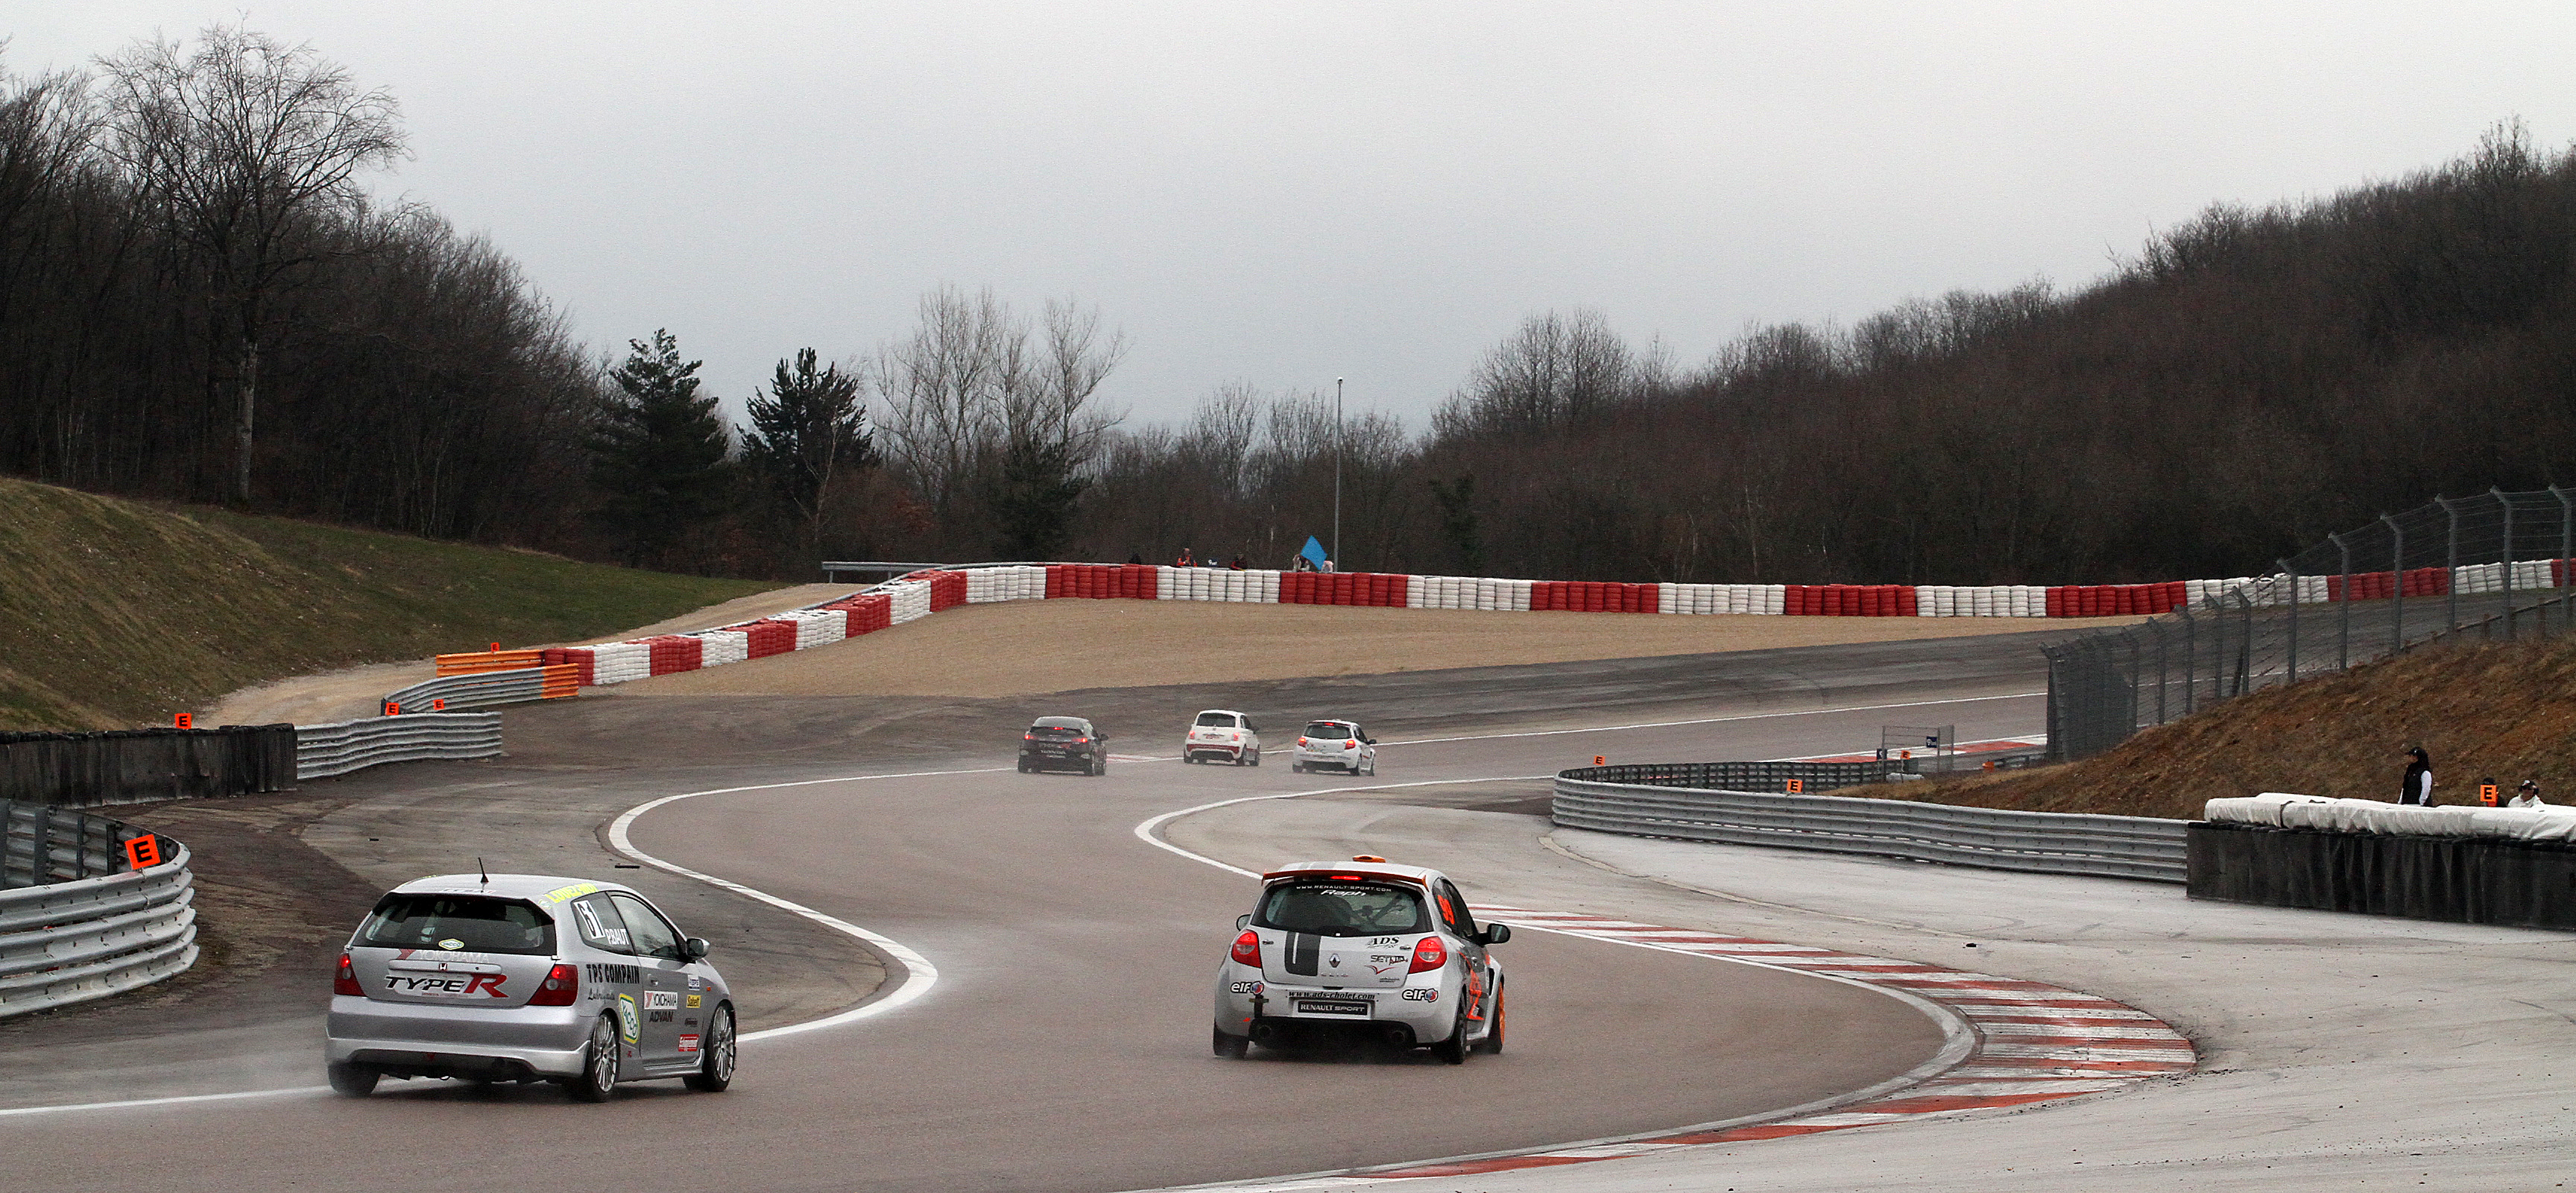 Top d part pour la coupe de france des circuits prenois dijon sport news - Coupe de france des circuit ...